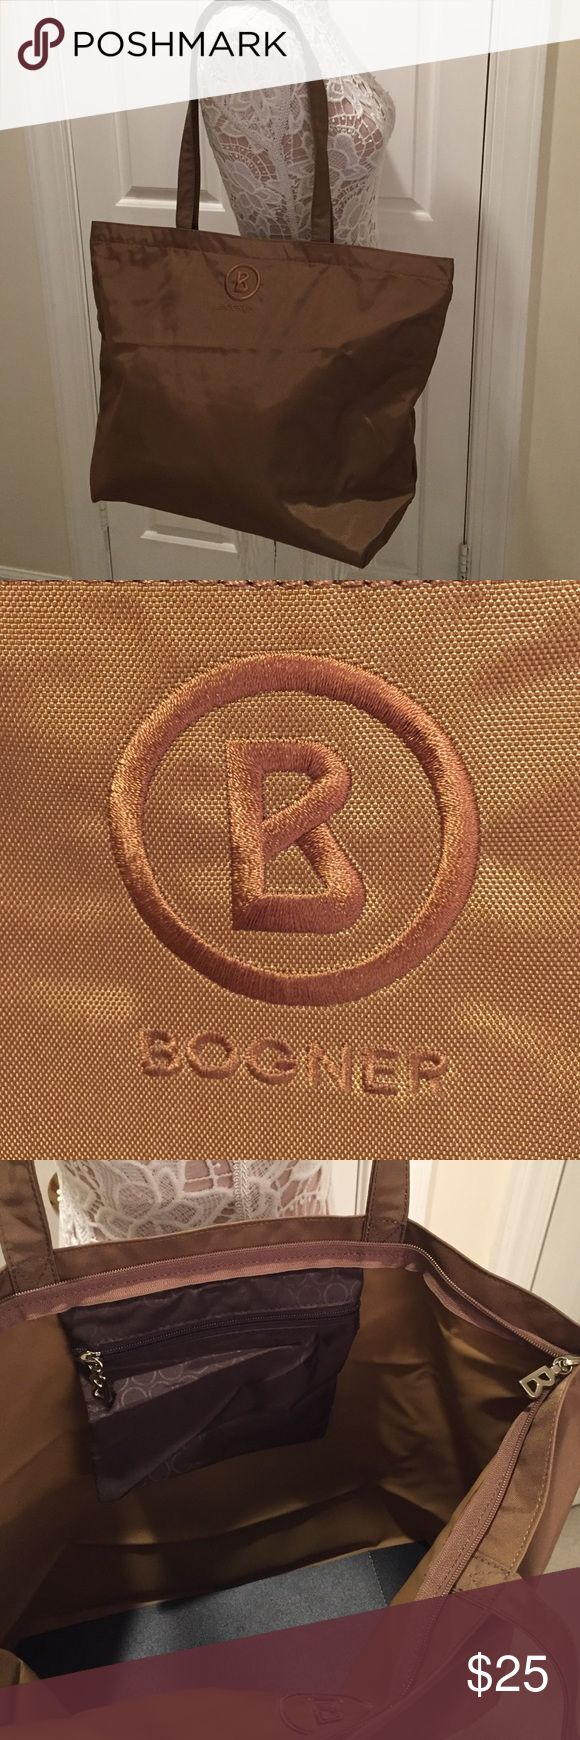 Bogner Zippered Nylon Tote Bag Bogner Zippered Nylon Tote Bag has a reinforced bottom and inside zippered pocket. Lined with a wipeable finish. Unused. Bogner Bags Totes